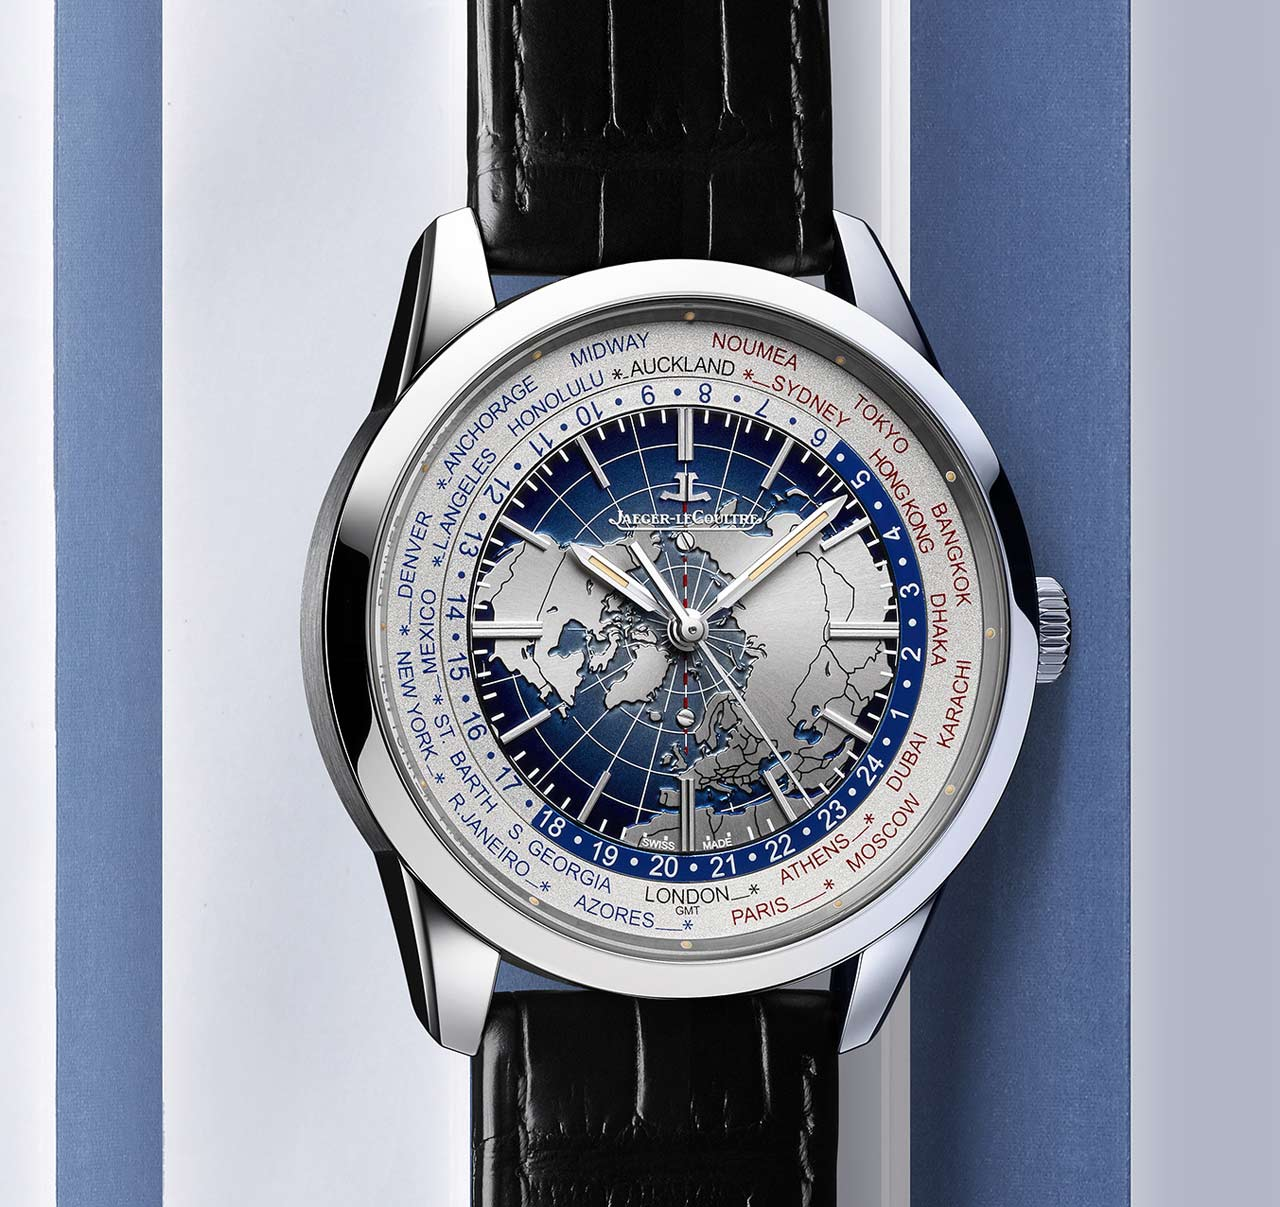 Jaeger-LeCoultre Geophysic Universal Time Watch